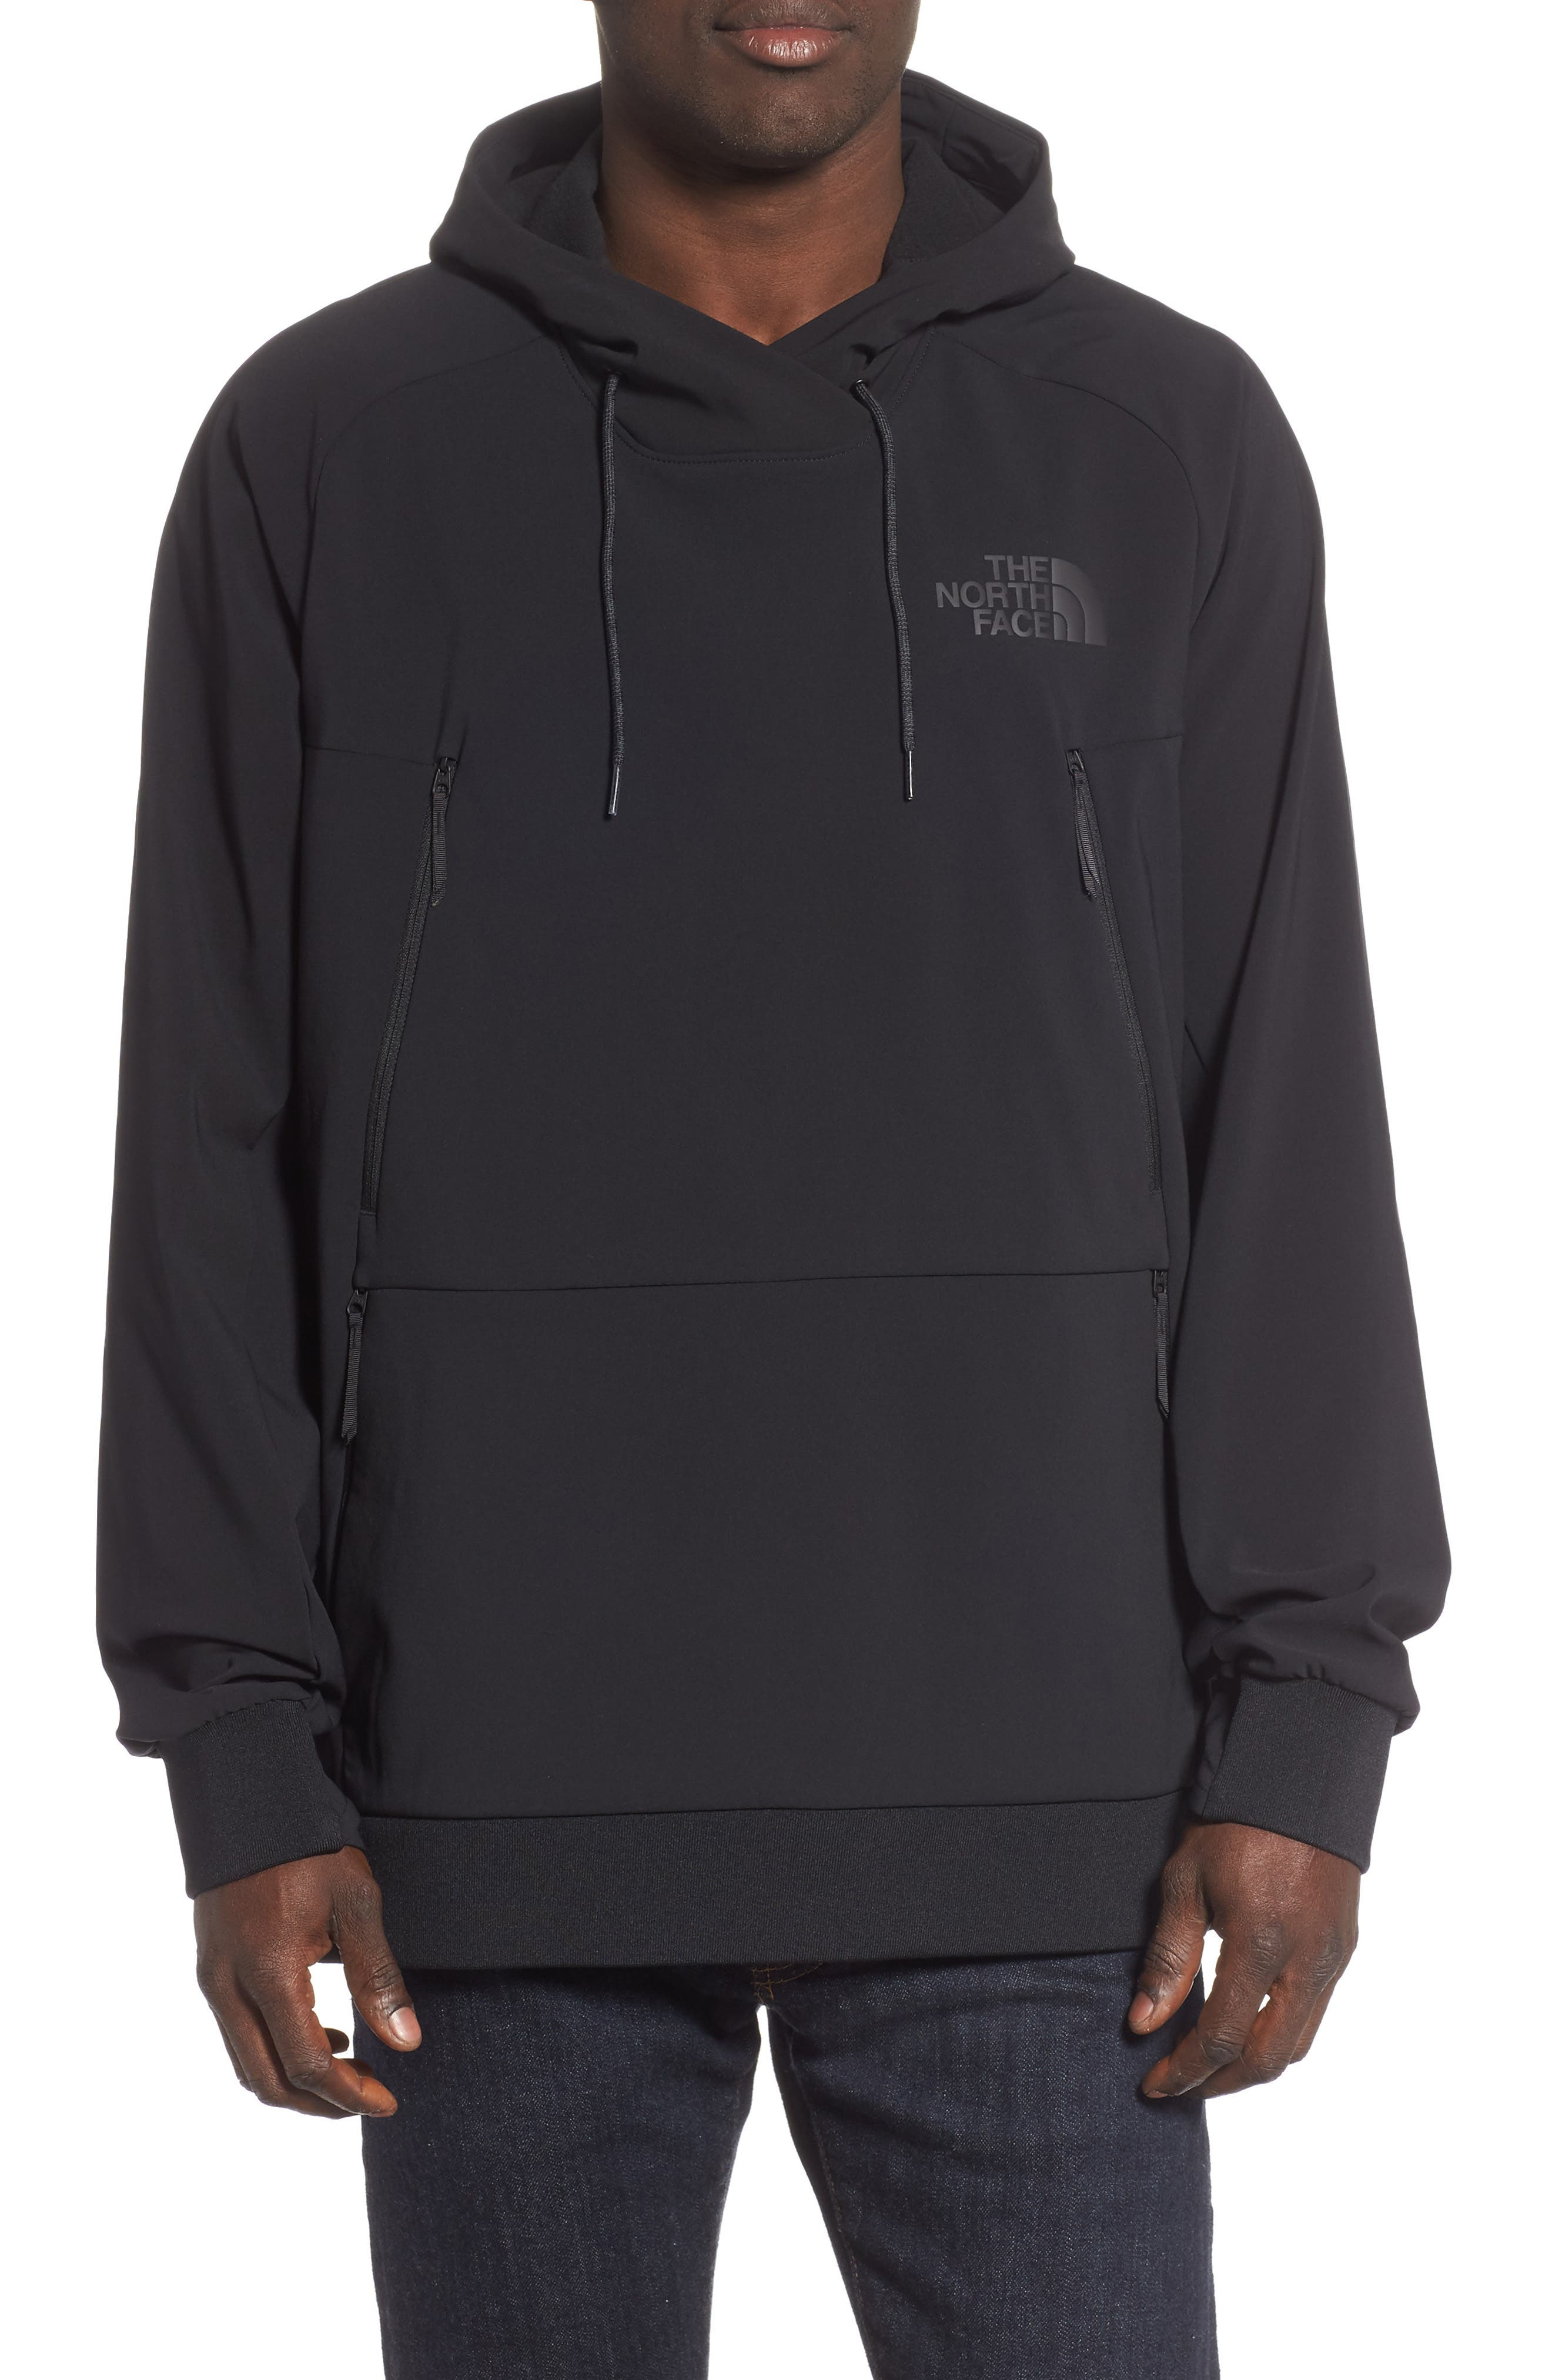 THE NORTH FACE Tekno Pullover Hoodie, Main, color, 001